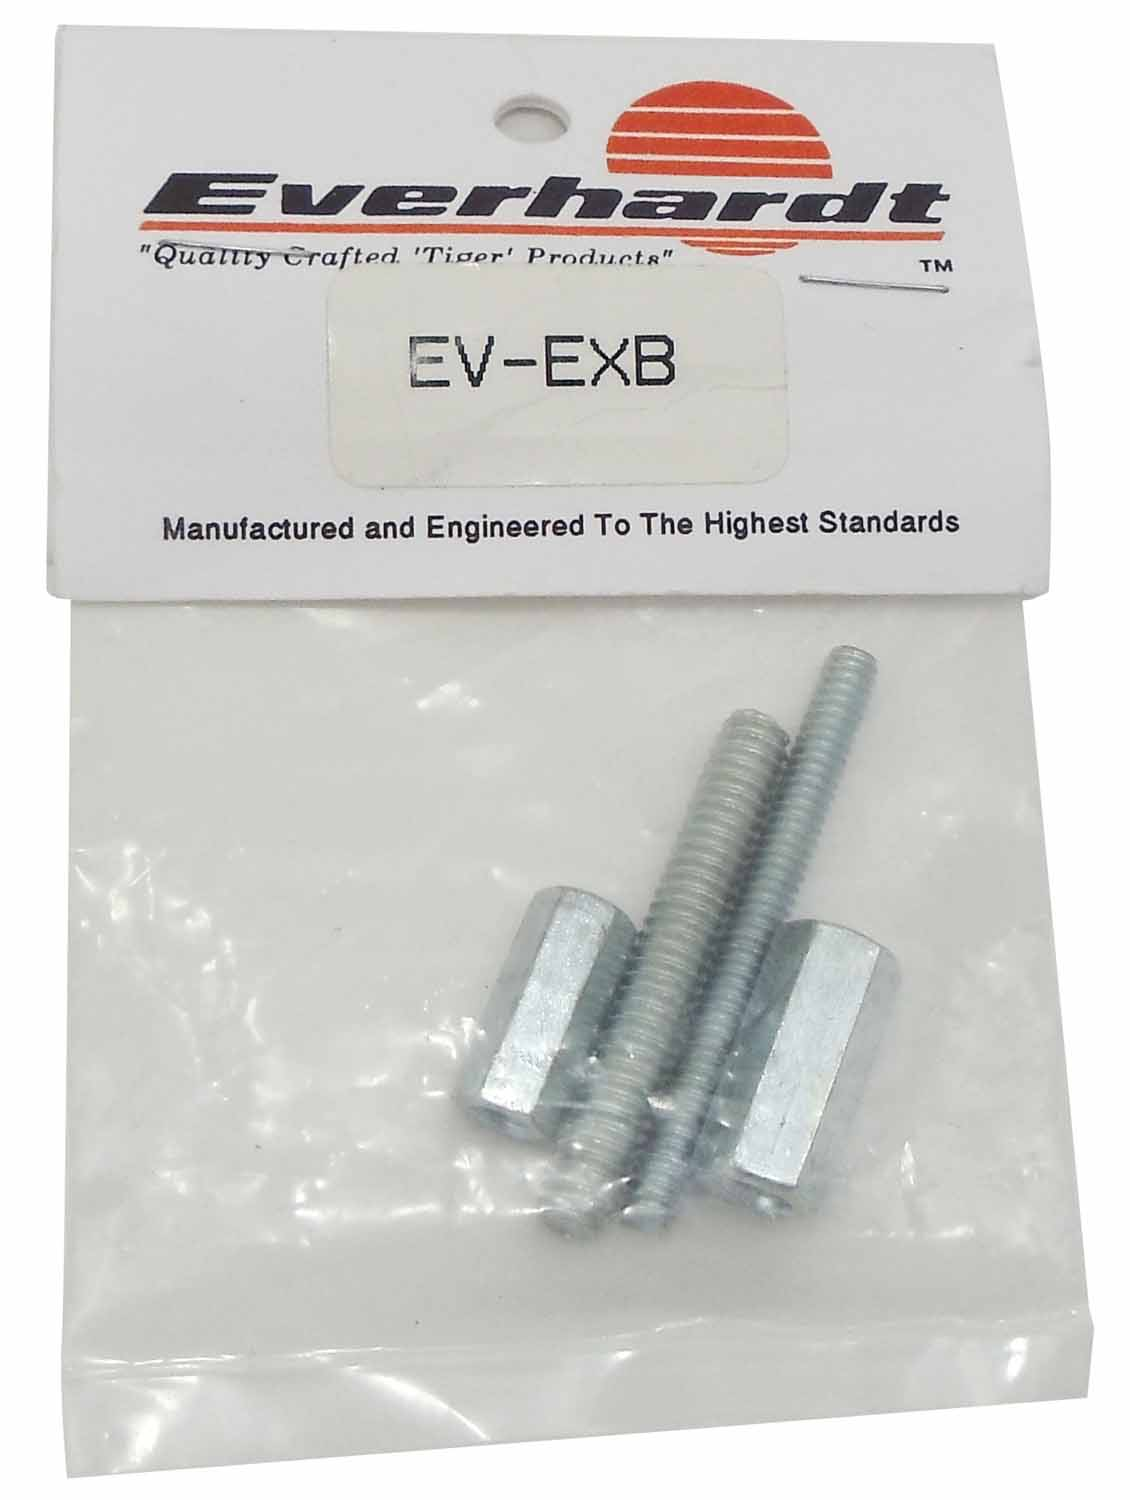 EVEXB - Everhardt Motorhome Extension Bolt Kit